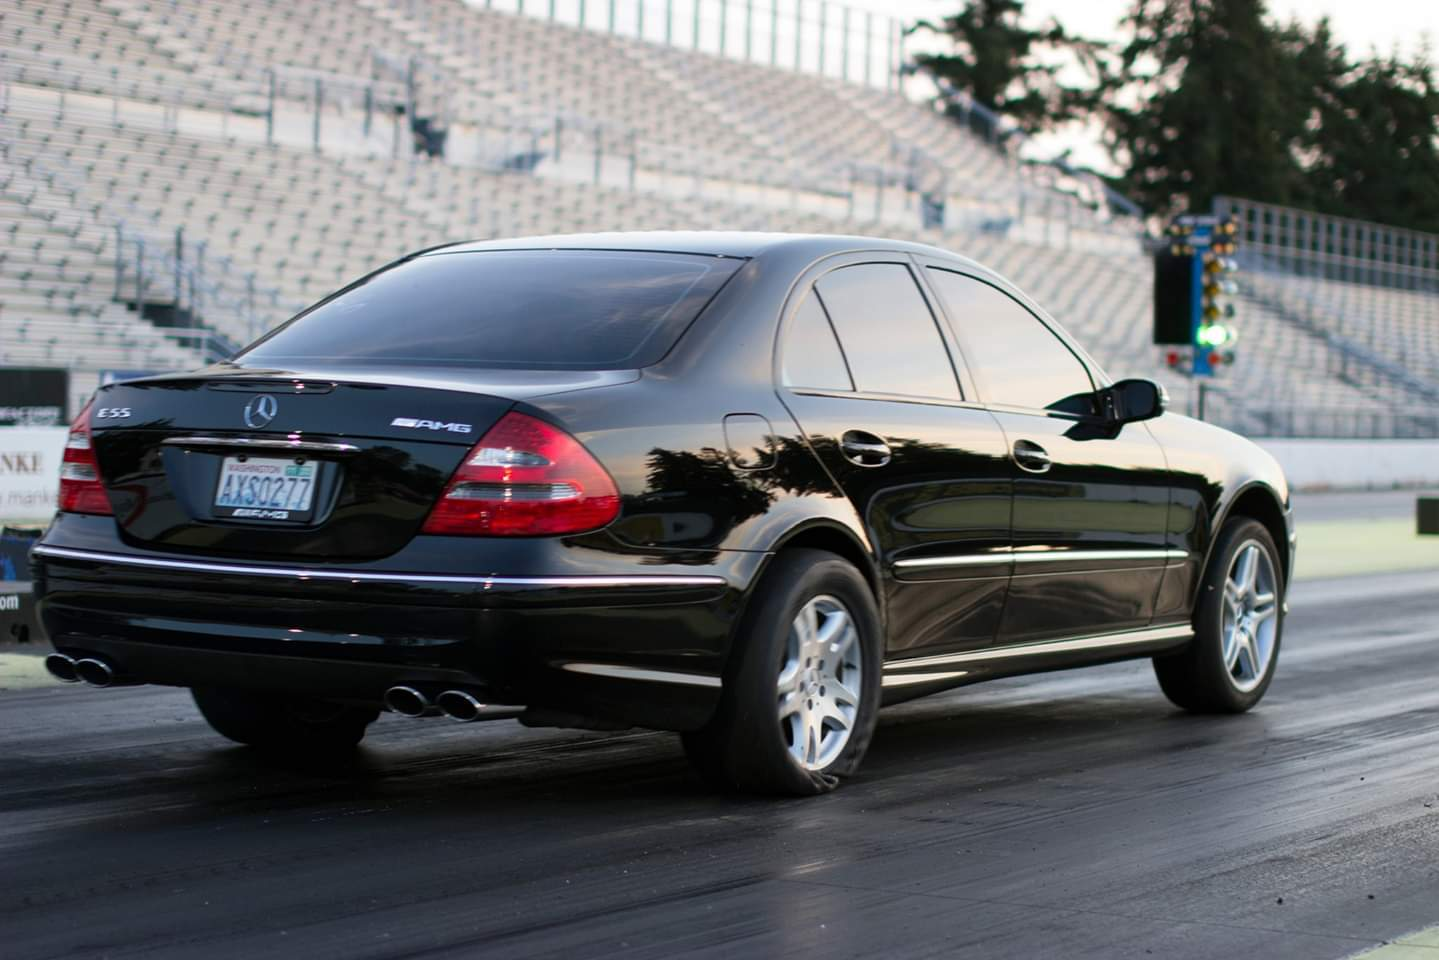 2004 Black  Mercedes-Benz E55 AMG  picture, mods, upgrades